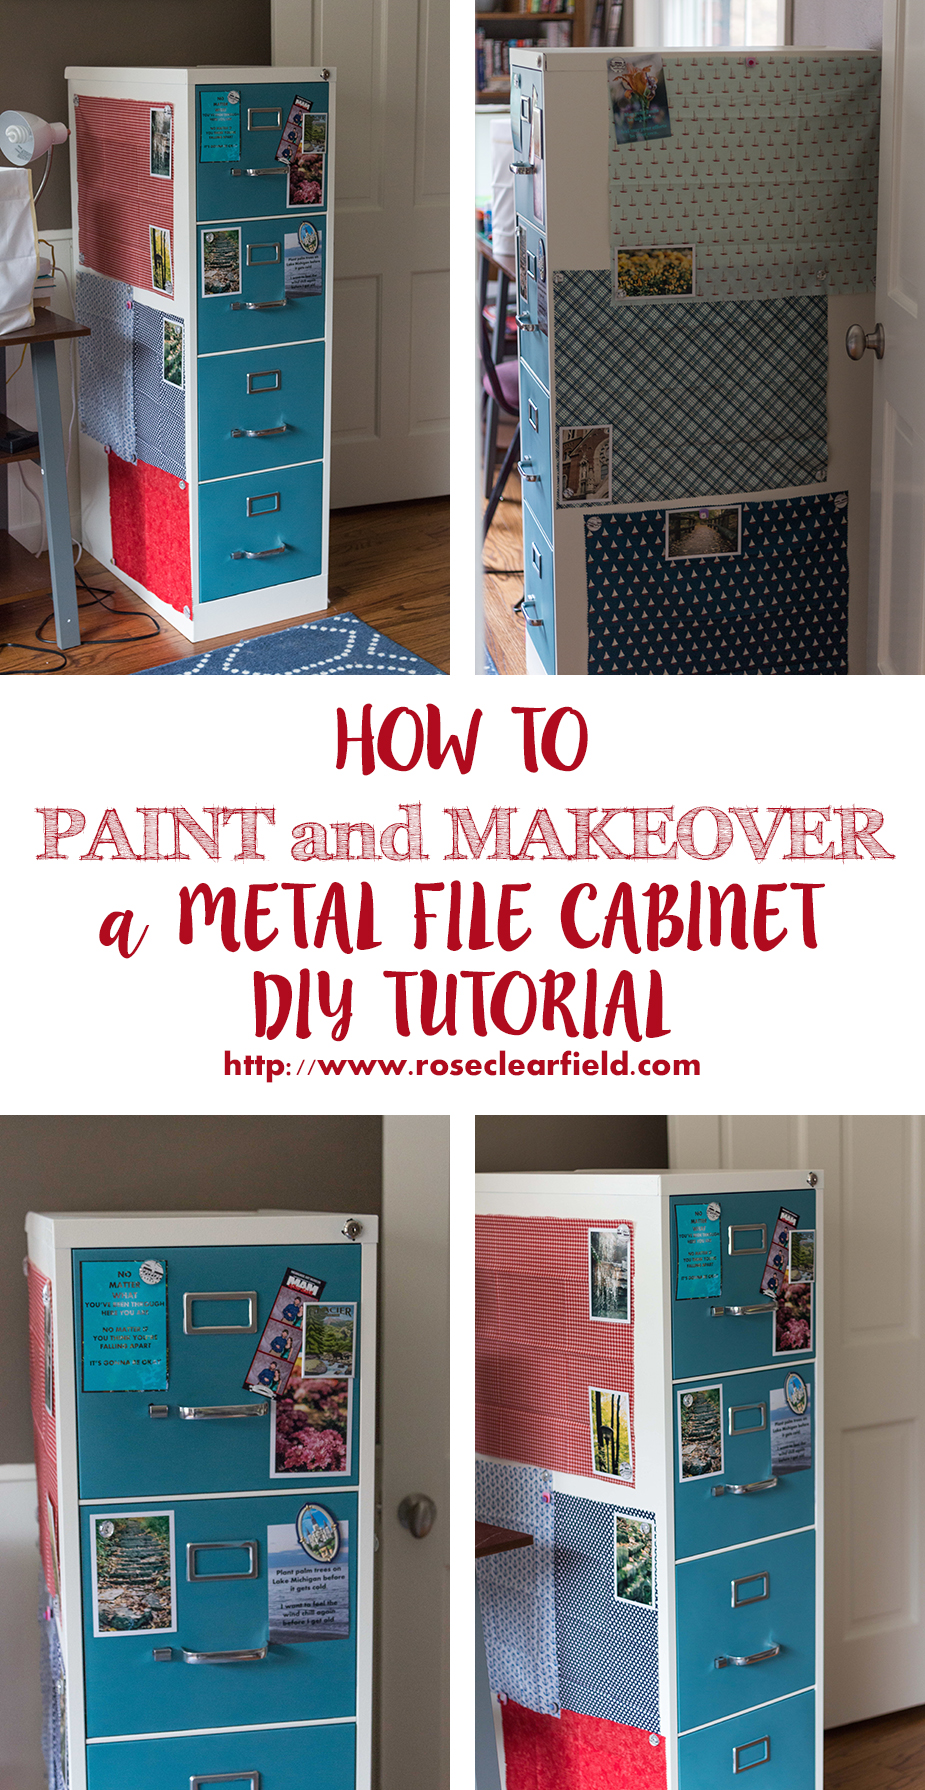 How to Paint and Makeover a Metal File Cabinet. A DIY tutorial from Rose Clearfield. | http://www.roseclearfield.com